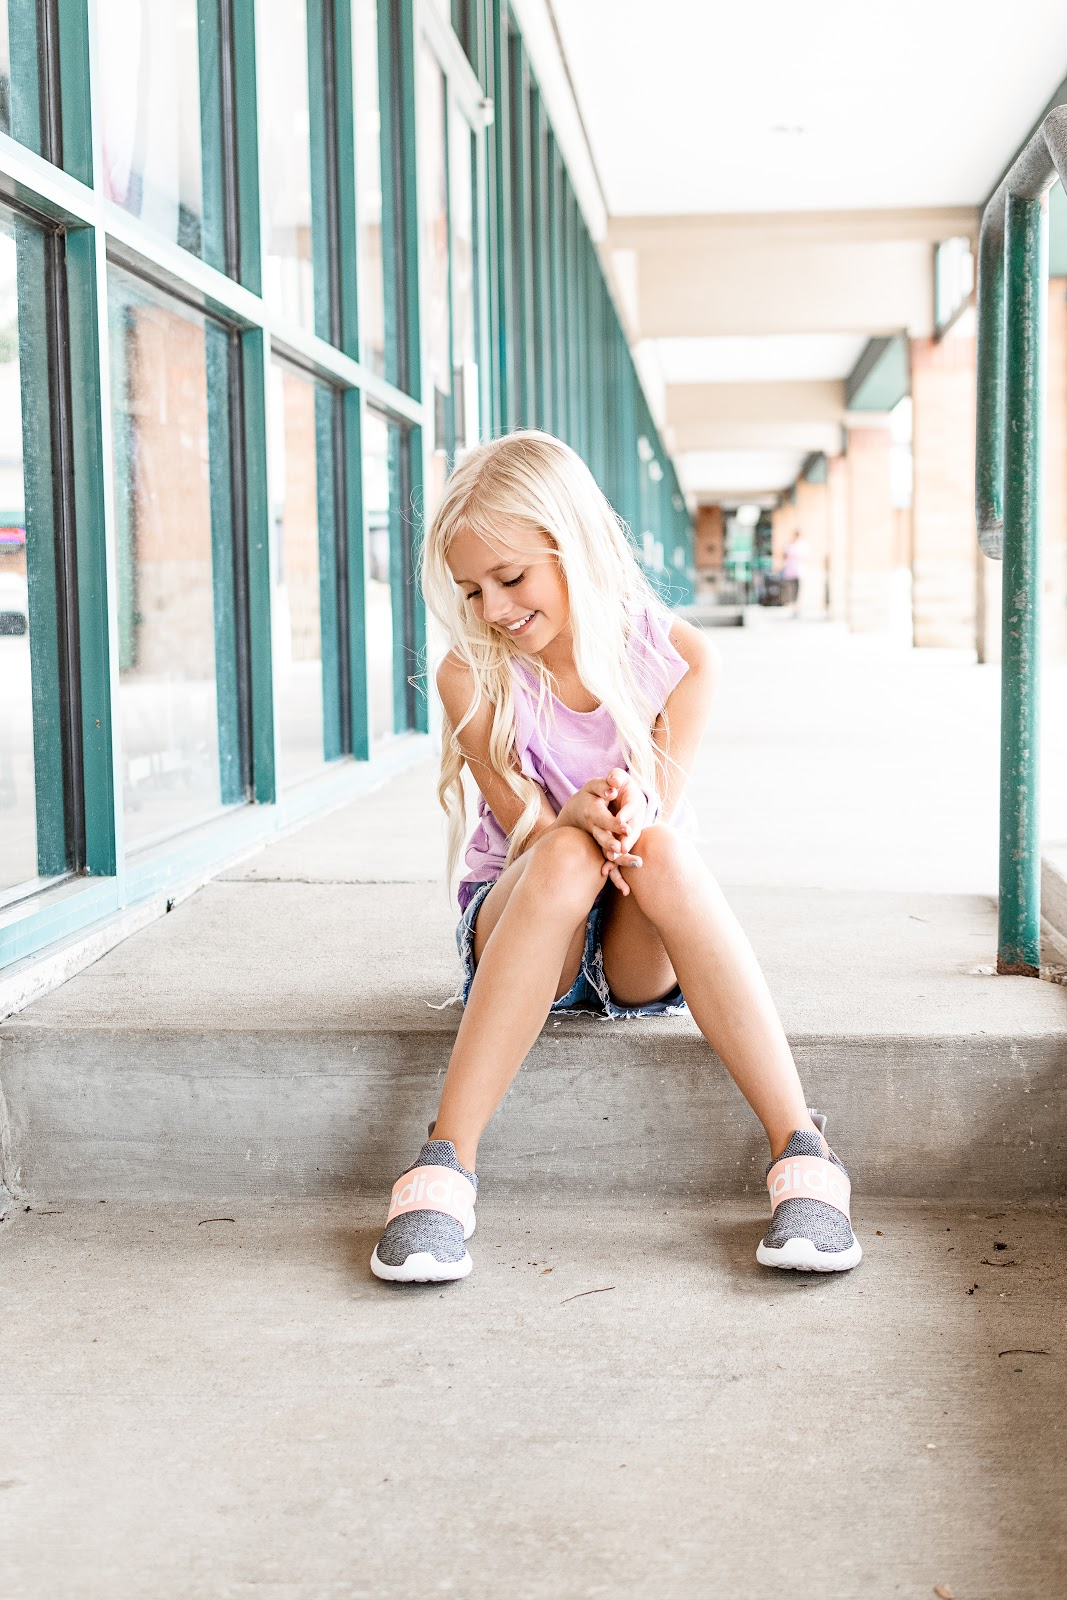 Finding the Perfect (and fastest) Back to School Shoes! Back to School Shoes Athletic Shoes Adidas Shoes Nike Shoes Under Armour Shoes Kids Shoes Girls Shoes Youth Shoes Sneakers Tennis Shoes Running Shoes ROXY Casual Sneakers Comfortable Shoes